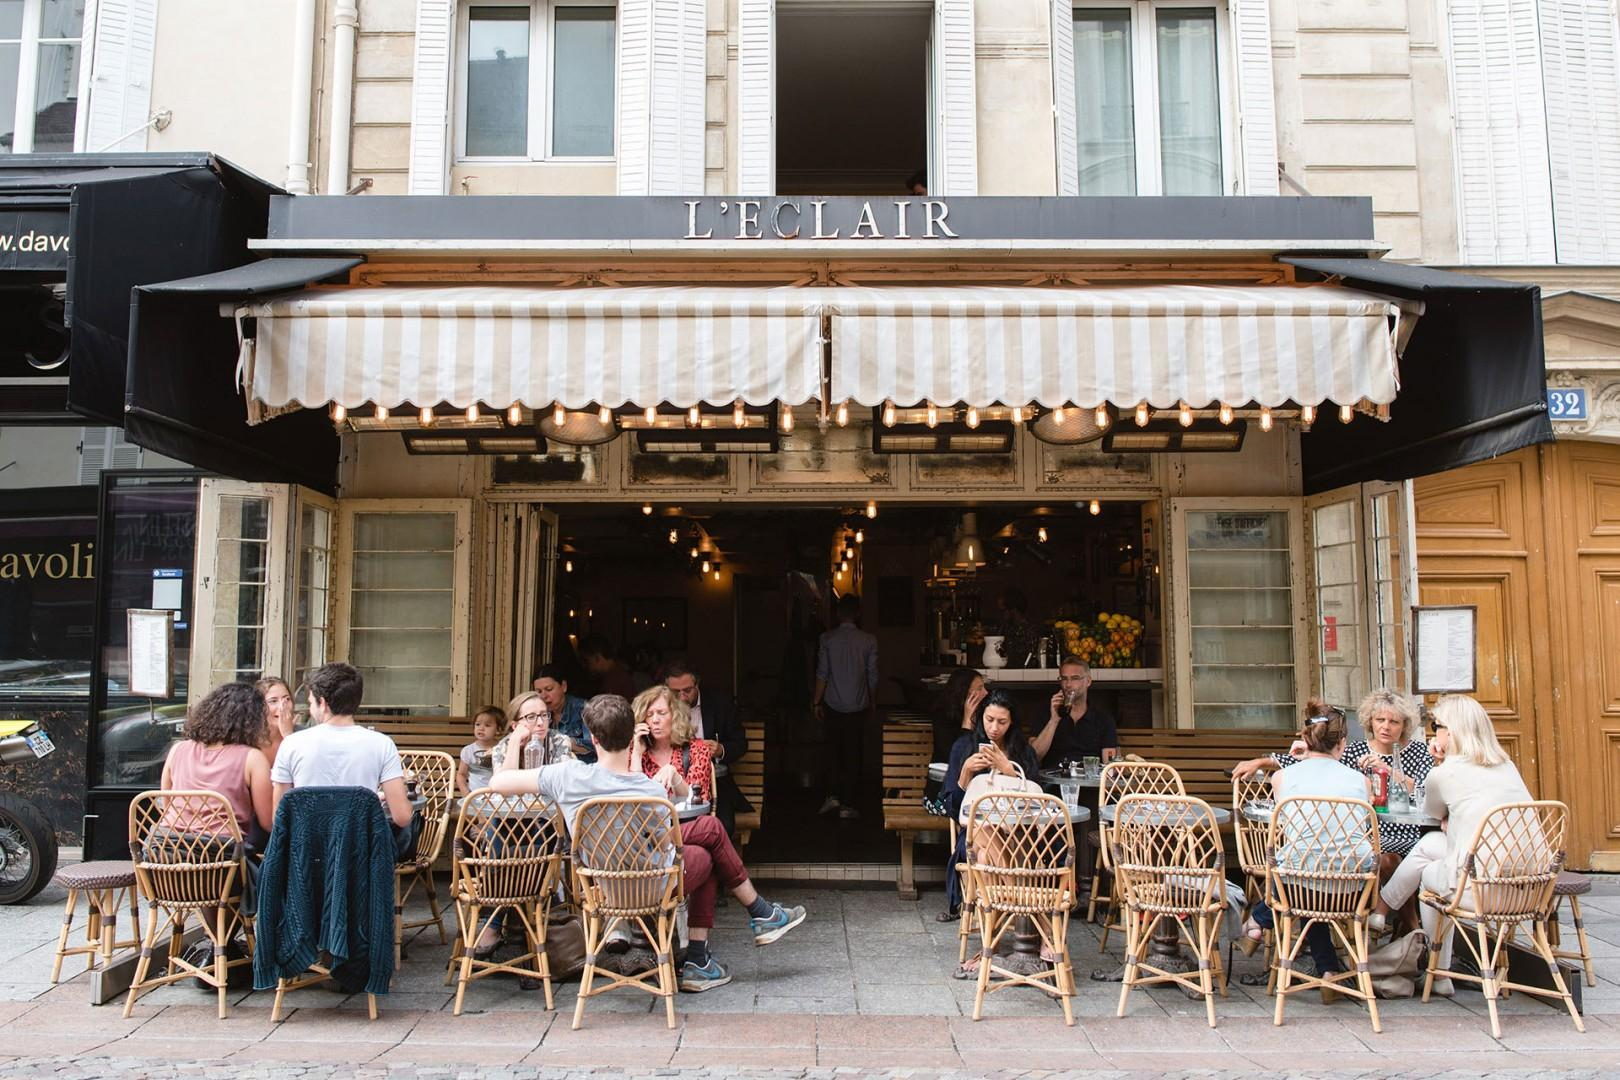 Enjoy Eclaire cafe on rue Cler